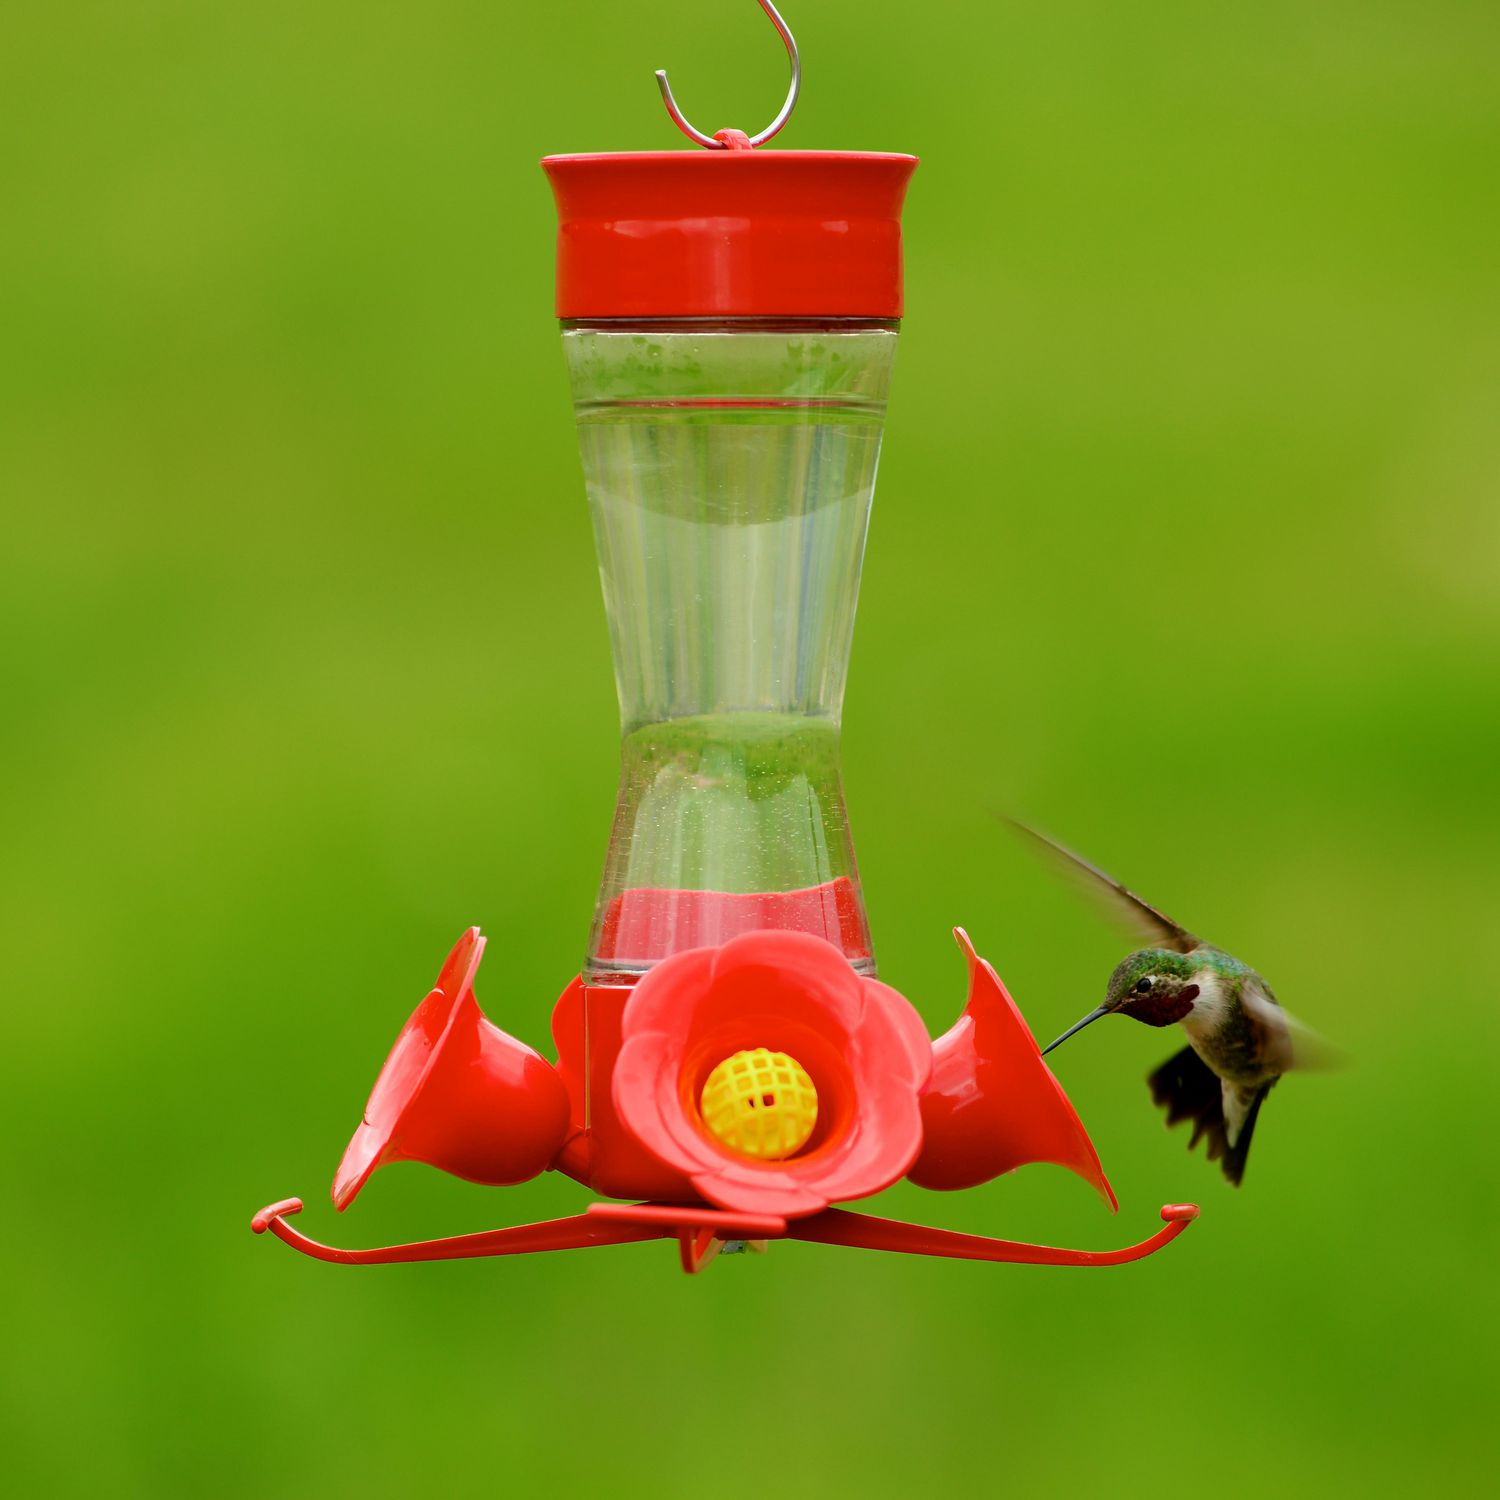 sol par camelot hummingbird a feeder bloom humingbird ps aqua cambloomaq